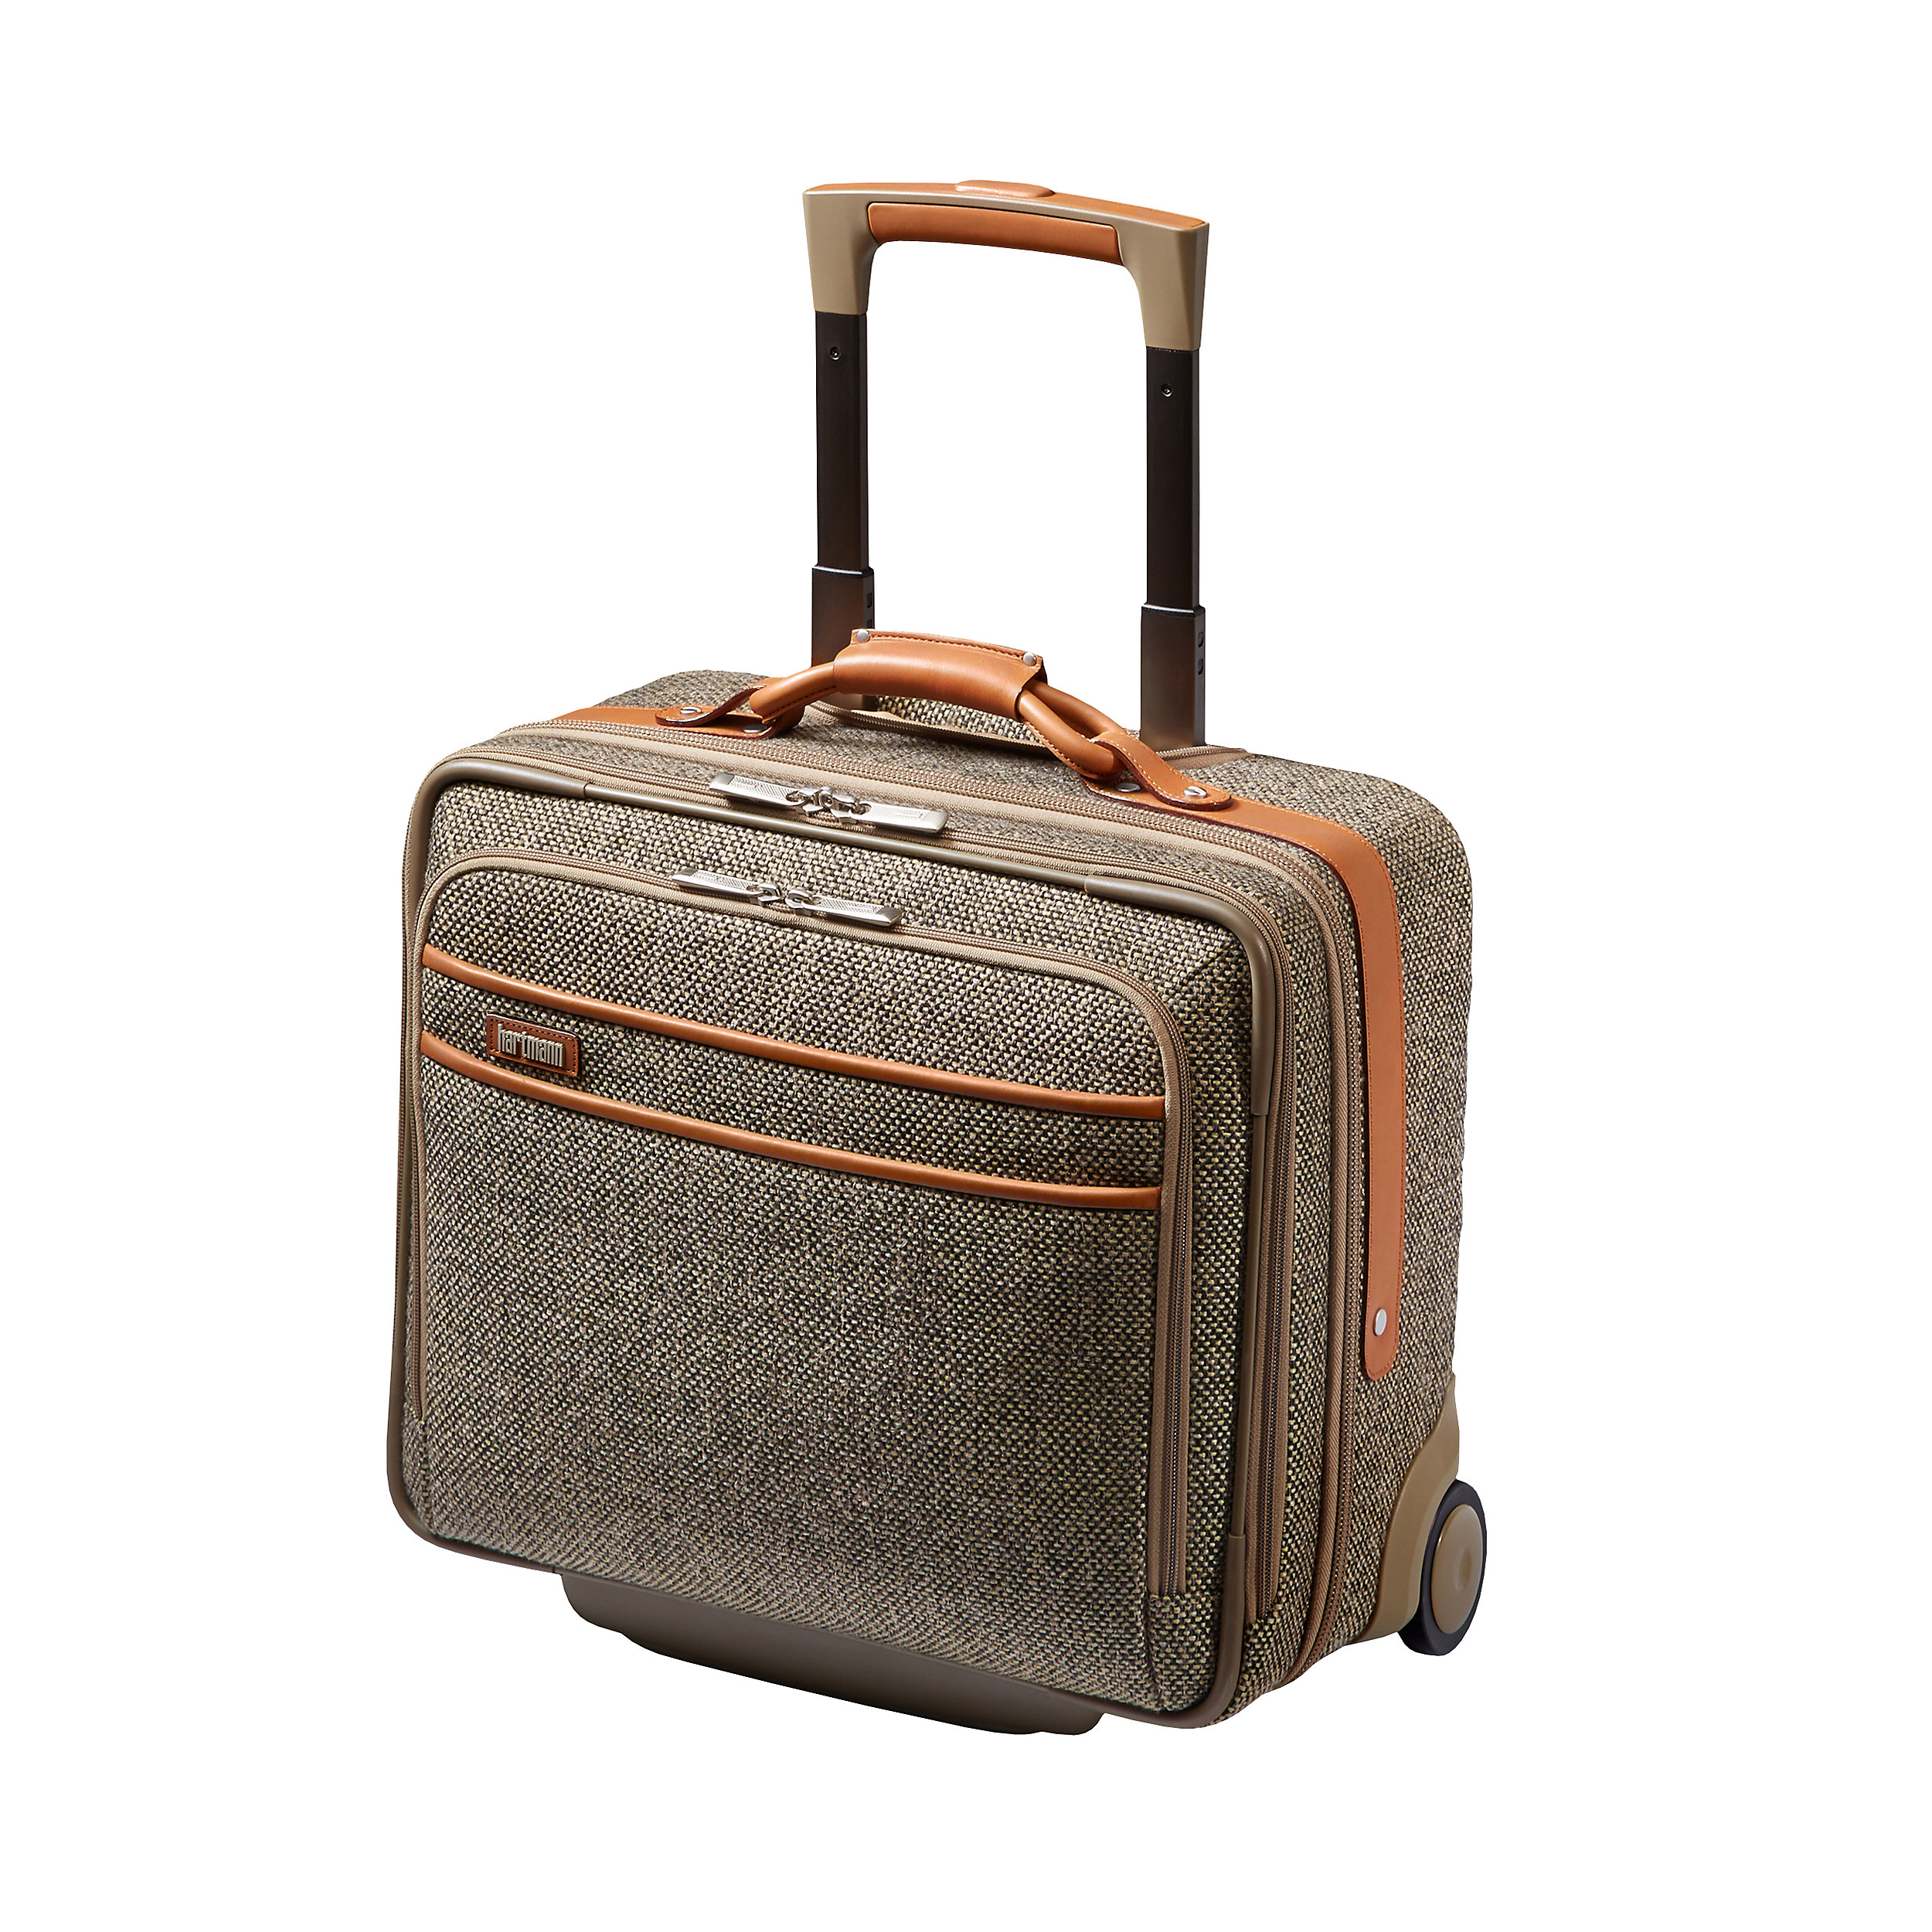 Pilot Case with 2 wheels 42cm Tweed Belting Collection XS 29 Liter